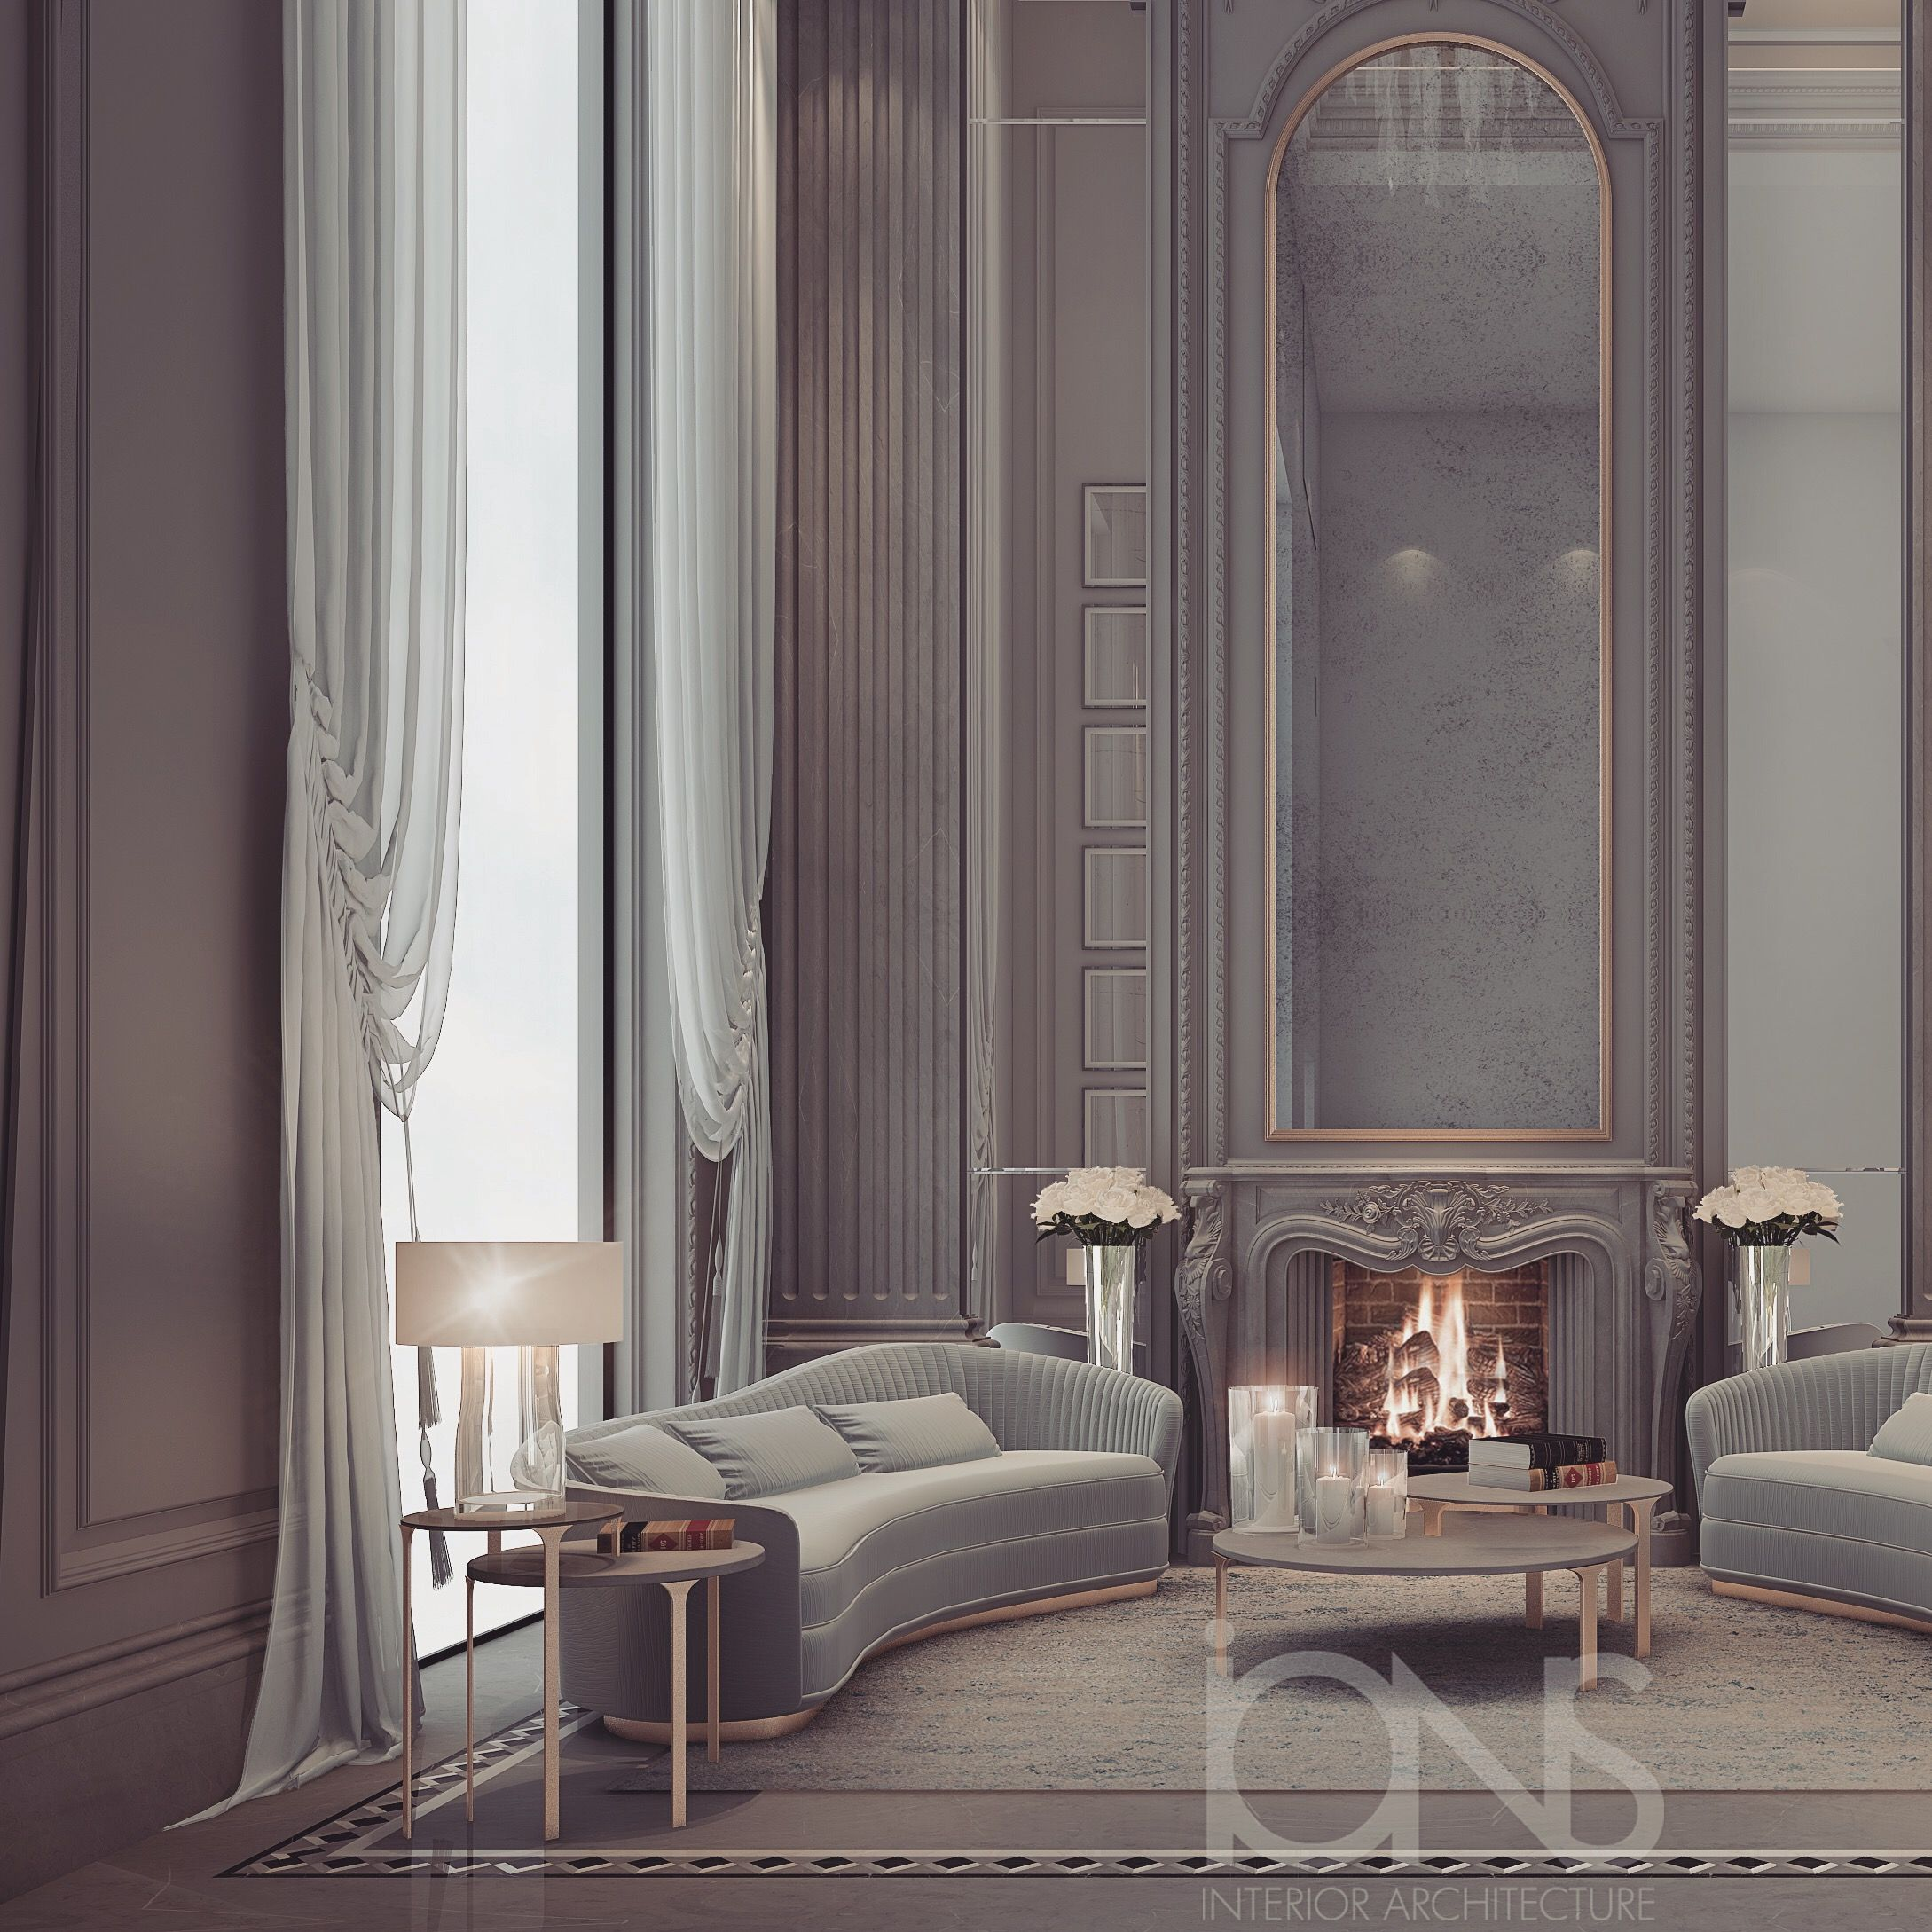 Bedroom Design Private Palace: Fireplace Lounge Design- Abu Dhabi Private Palace